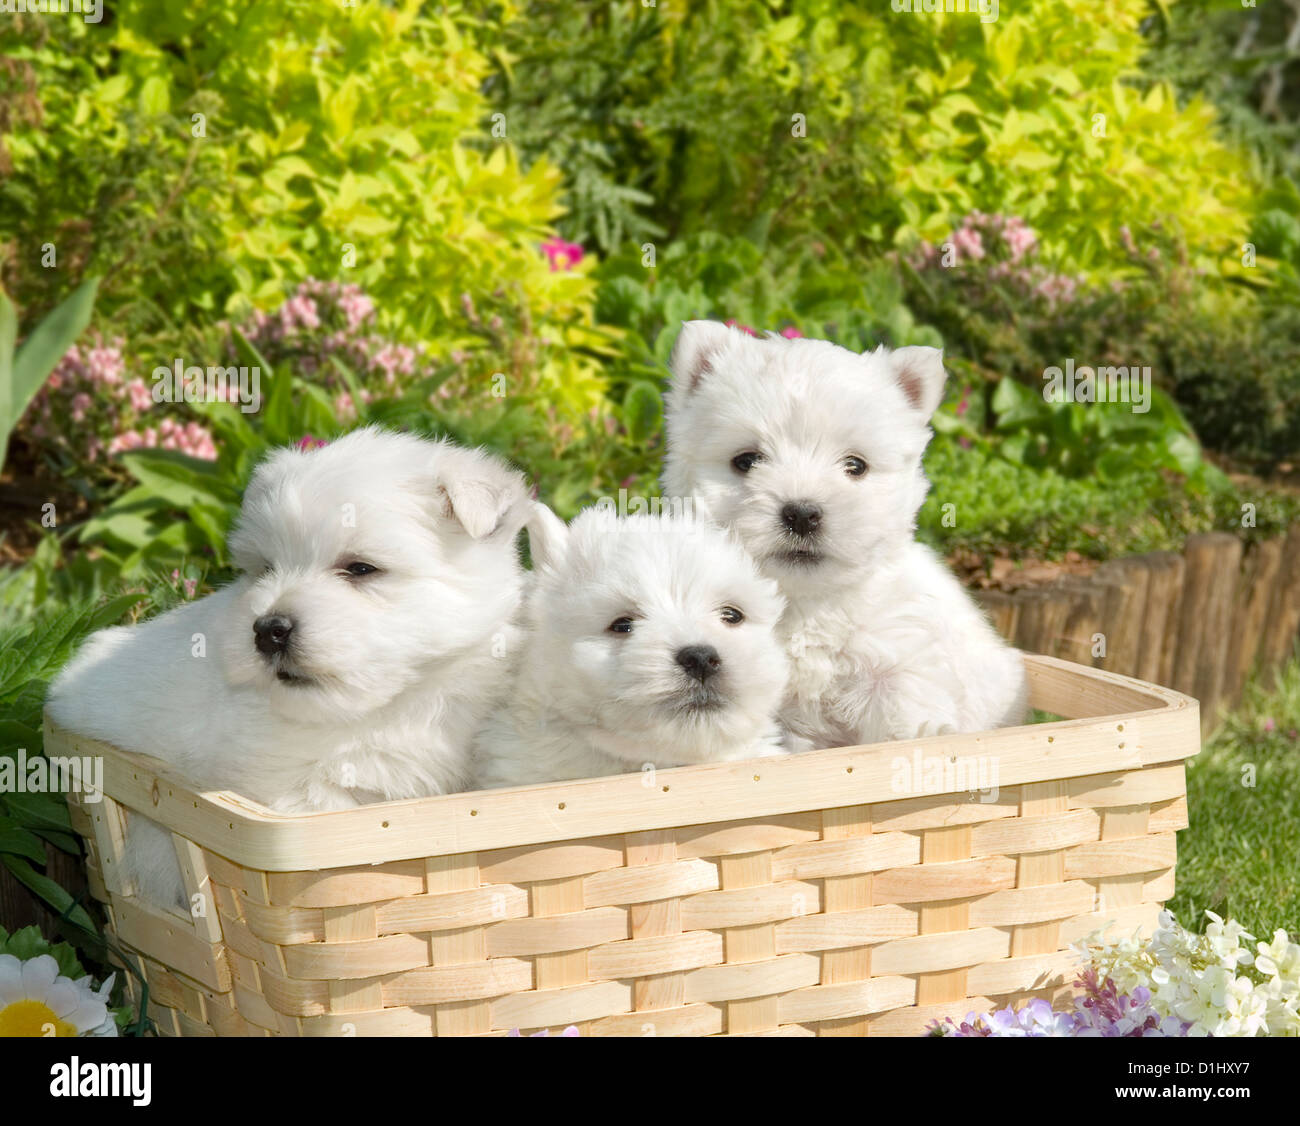 Three West Highland White Terrier dogs in the garden - Stock Image